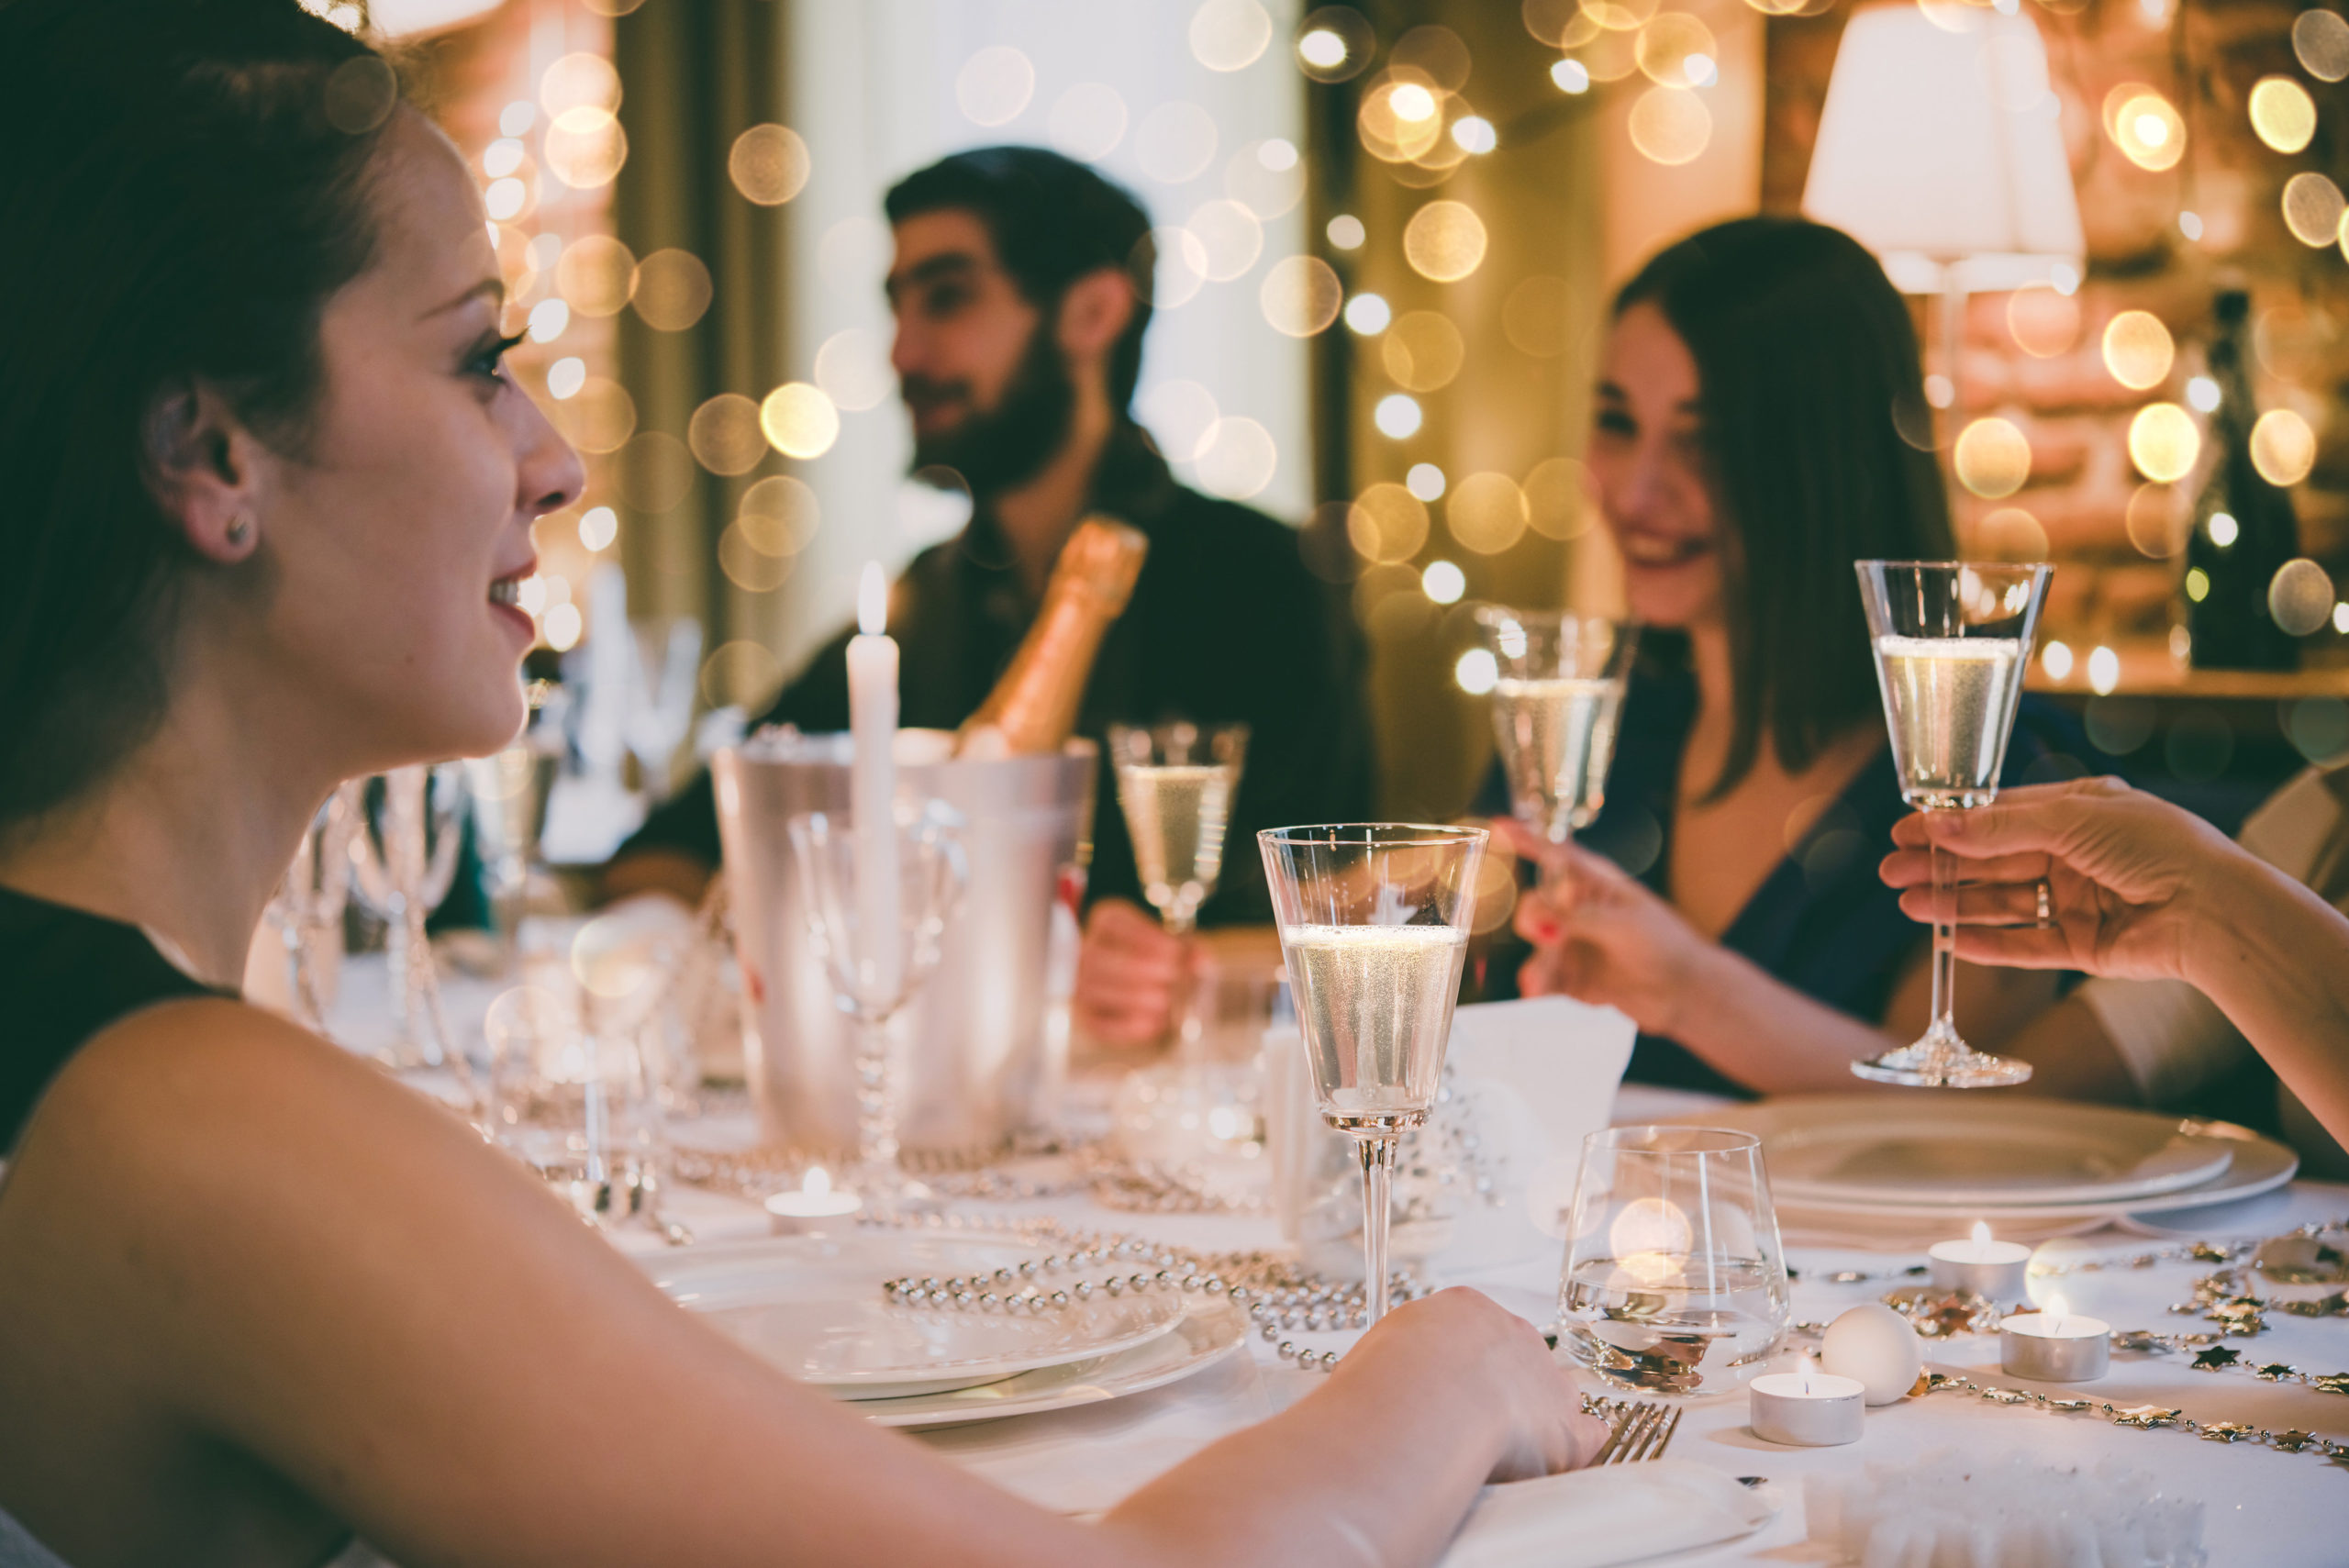 Christmas is coming! – Here's how to make your restaurant stand out this festive season.